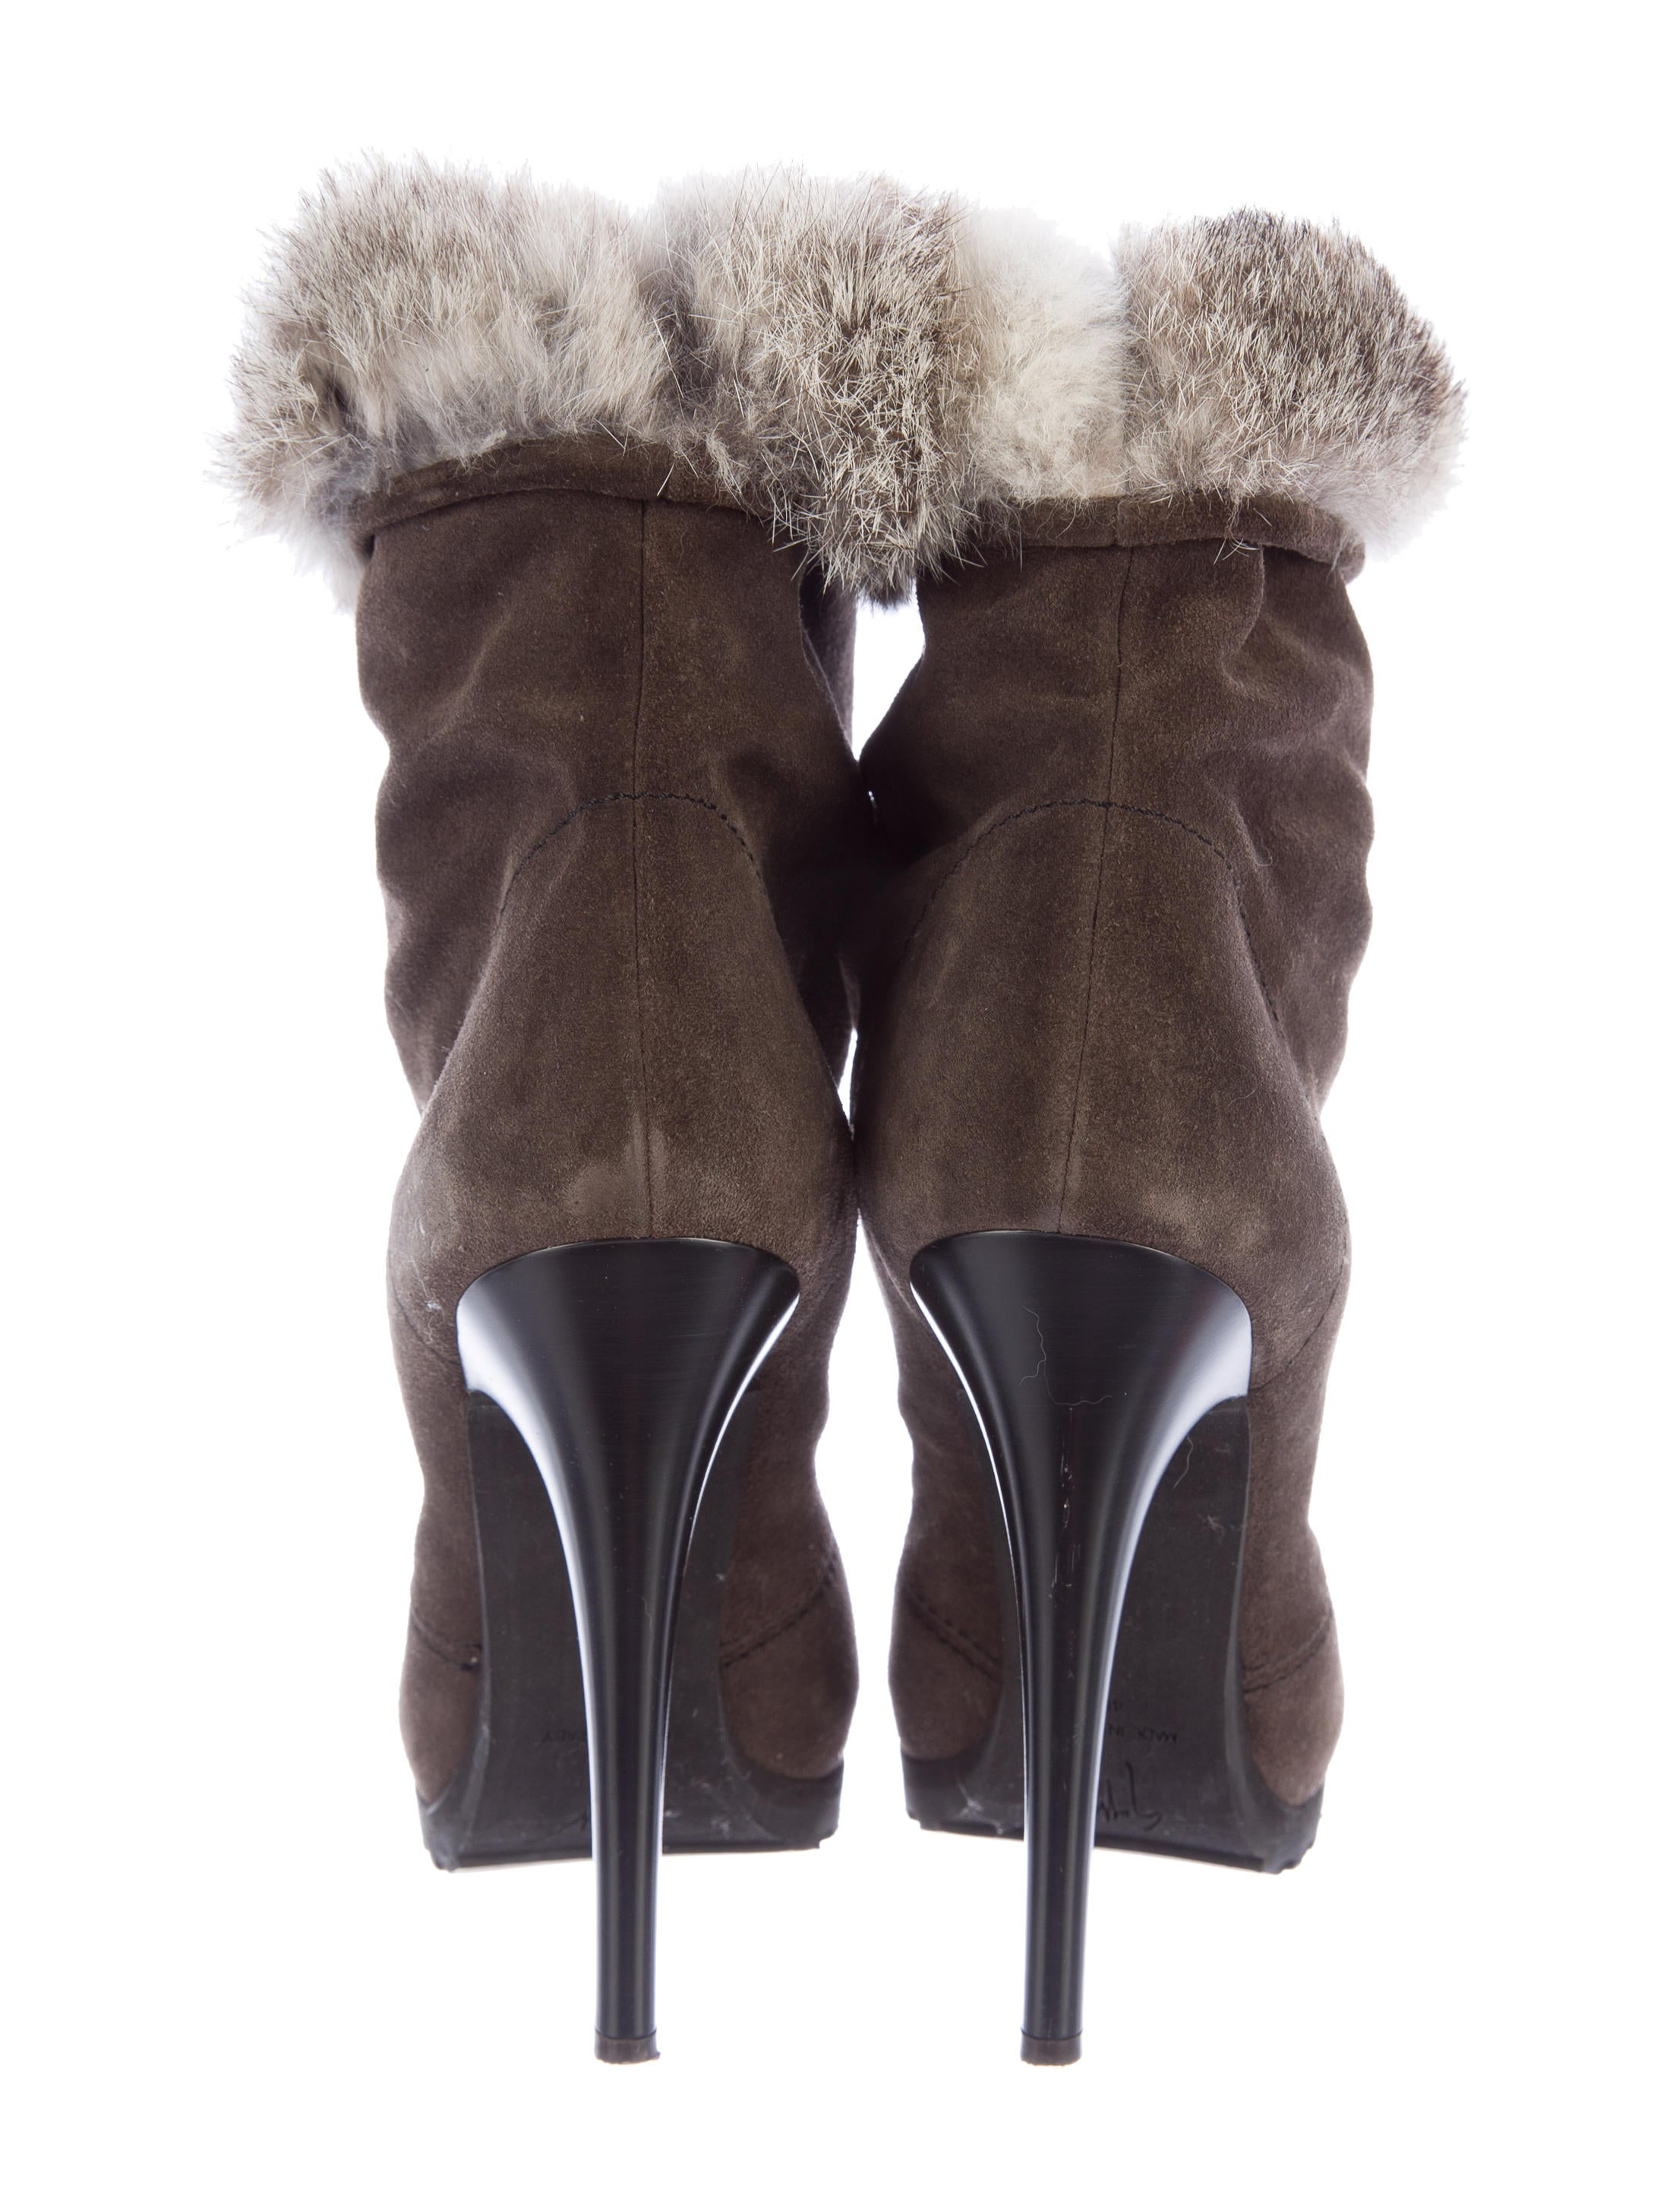 Black leather and mink fur trim ankle boot from Christopher Kane featuring a pointed toe, a mid high stiletto heel, a fur trim, a rear zip fastening and a brand embossed insole.